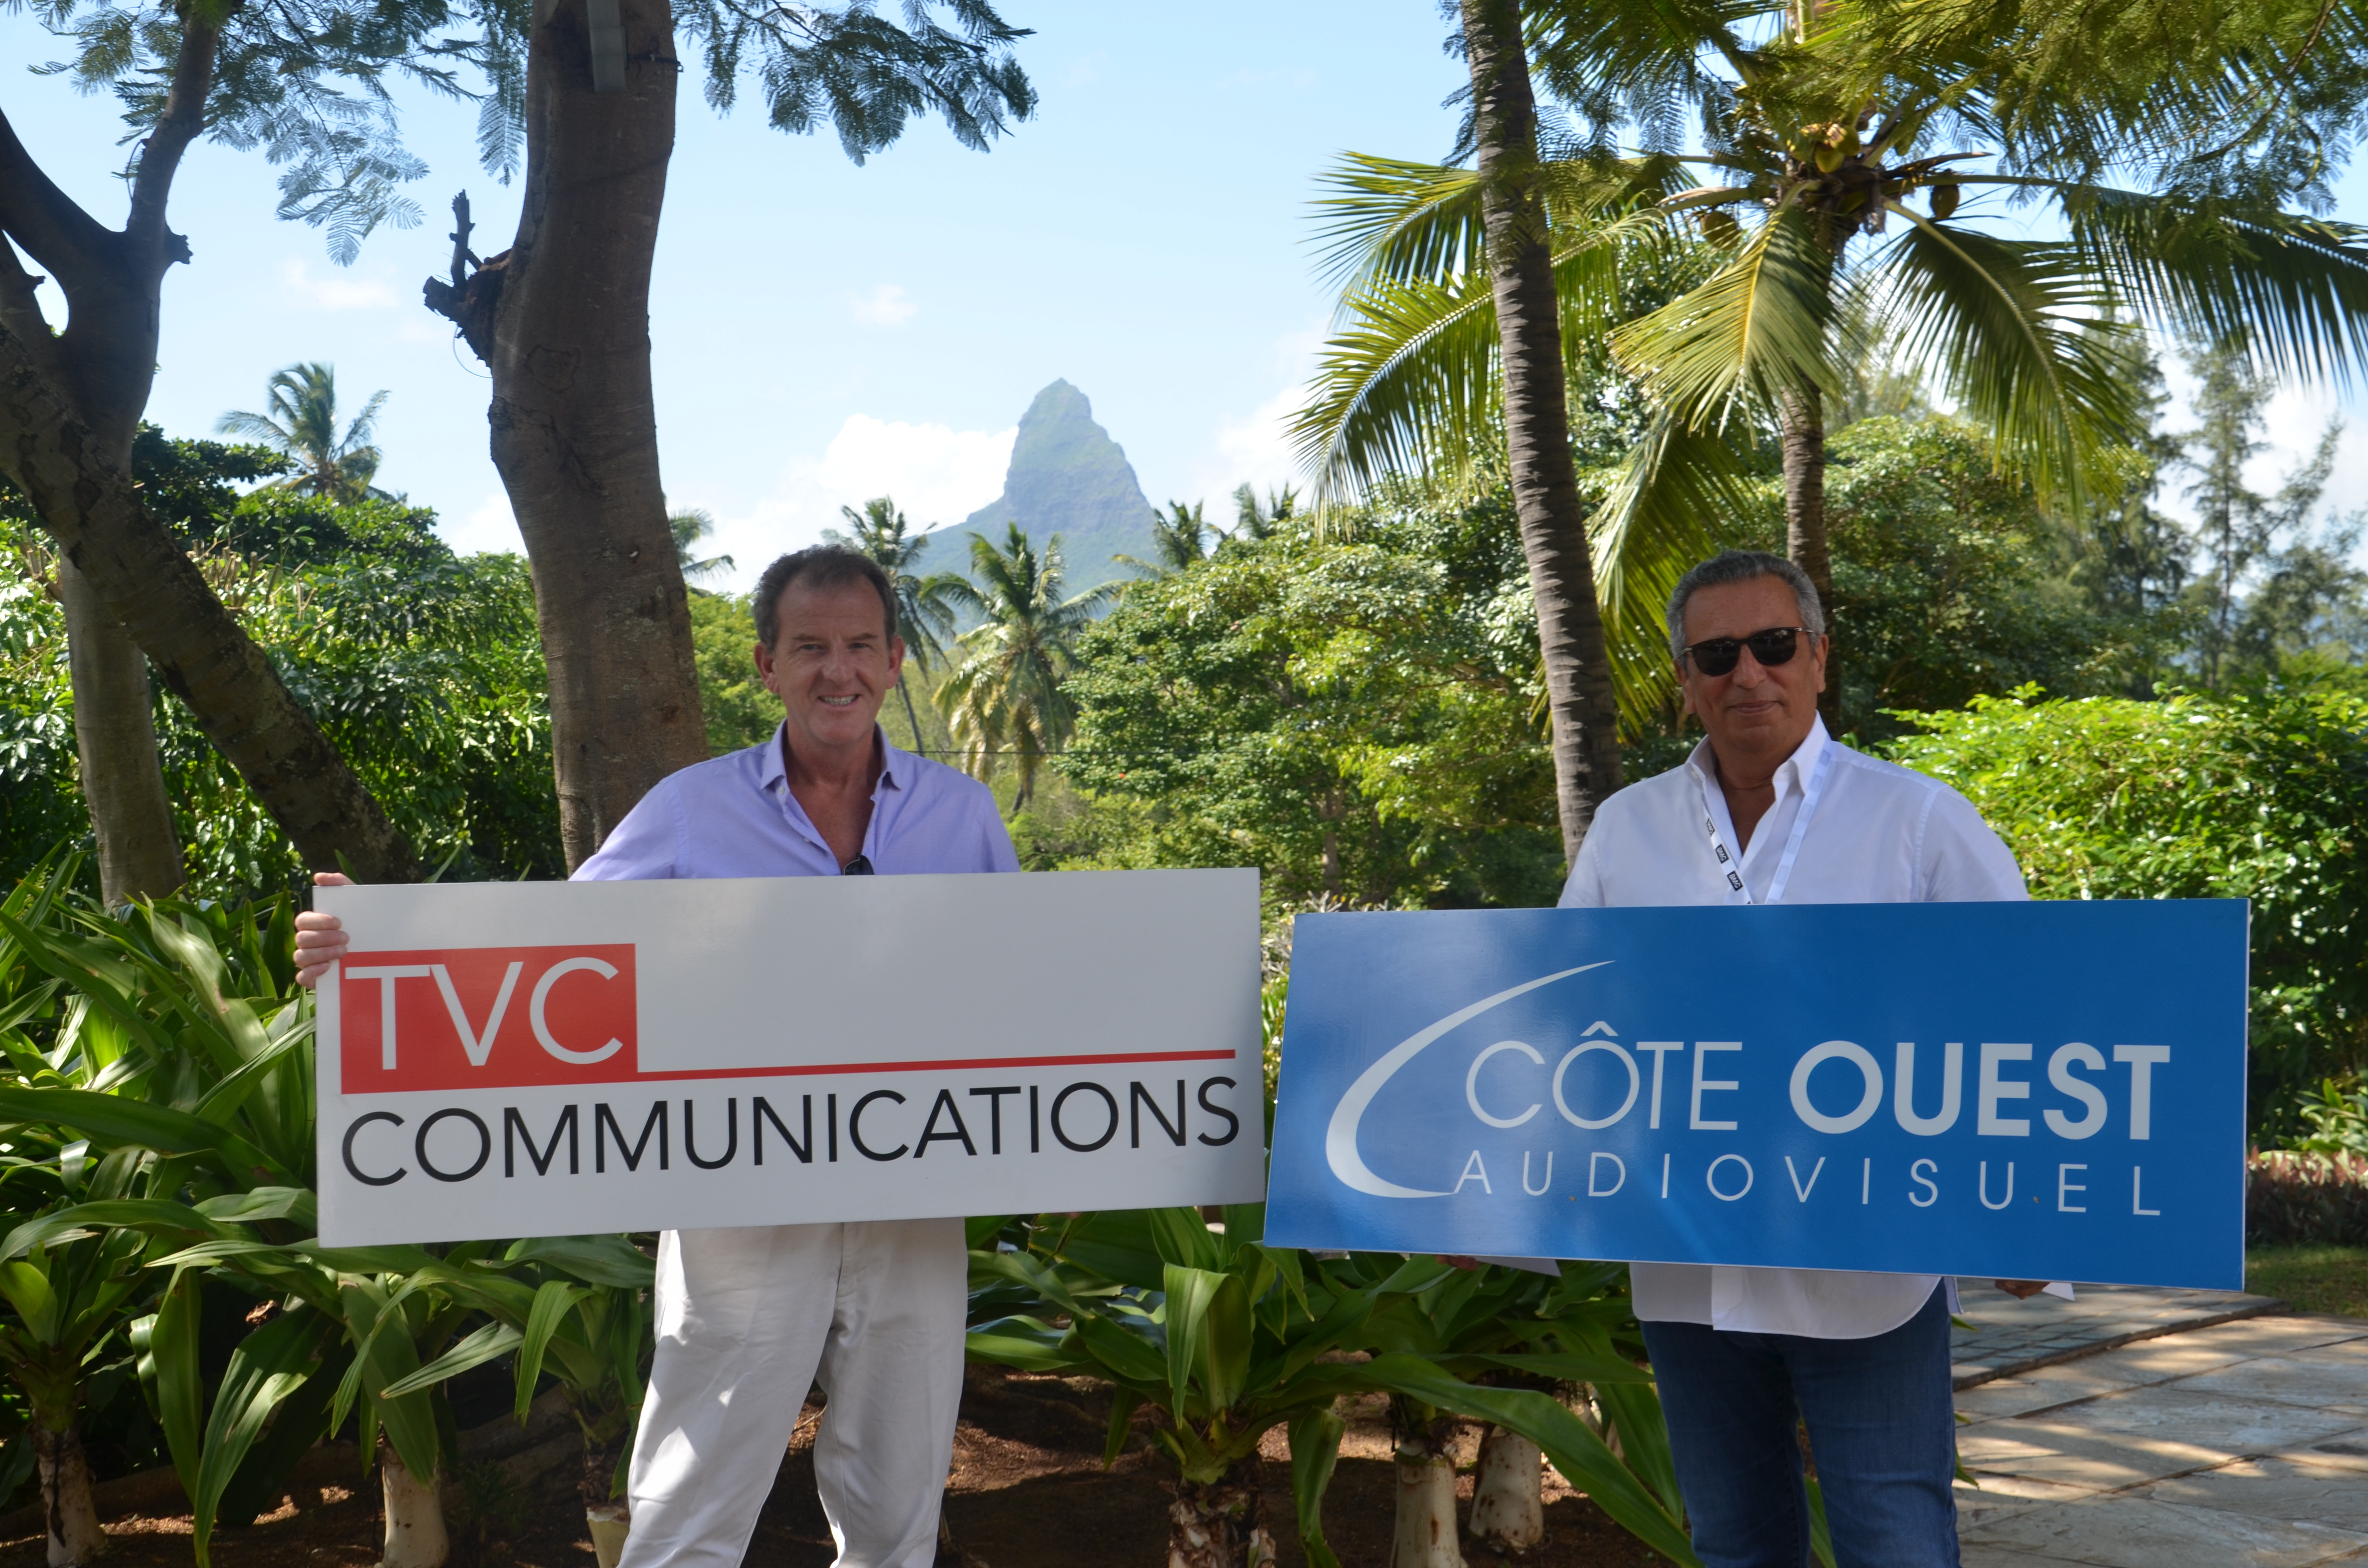 L-R: Chief Executive Officer, TVC Communications, Andrew Hanlon and Côte Ouest Chief Executive Officer, Bernard Azria during the announcement in Mauritius.